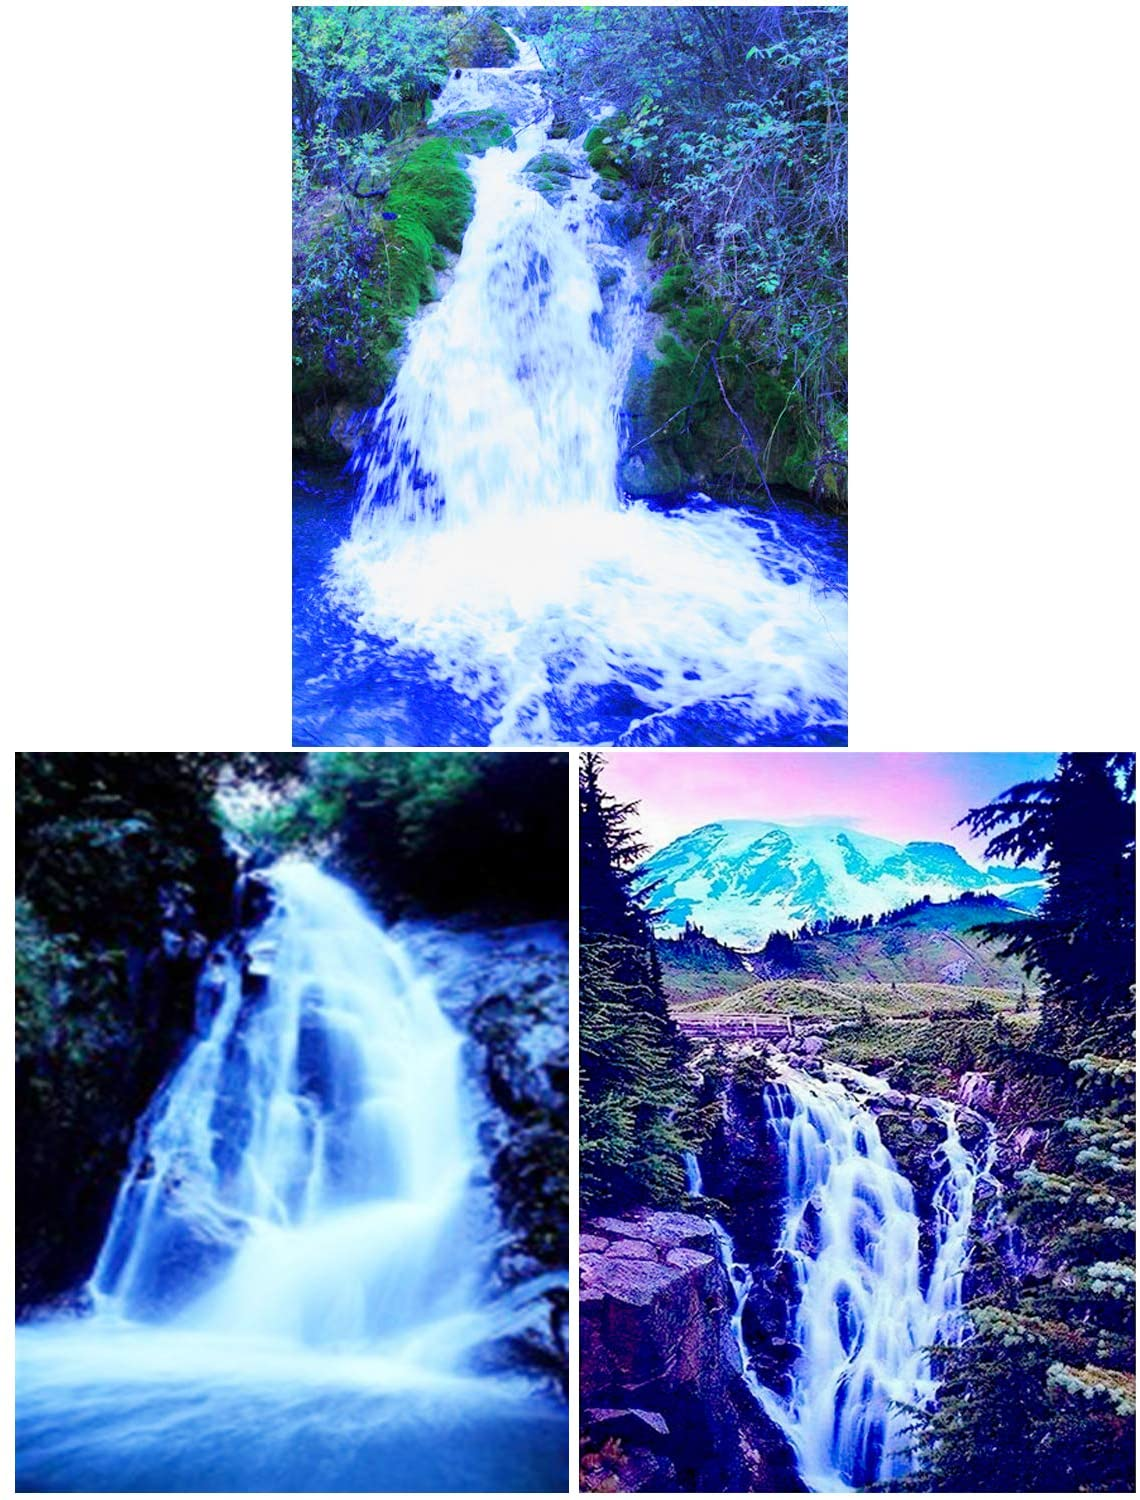 HaiMay 3 Pieces DIY 5D Diamond Painting Kits for Adults Paint by Number Kits Full Drill Painting Diamond Pictures Arts Craft for Wall Decoration,Waterfall Style (10 x 12 inches)